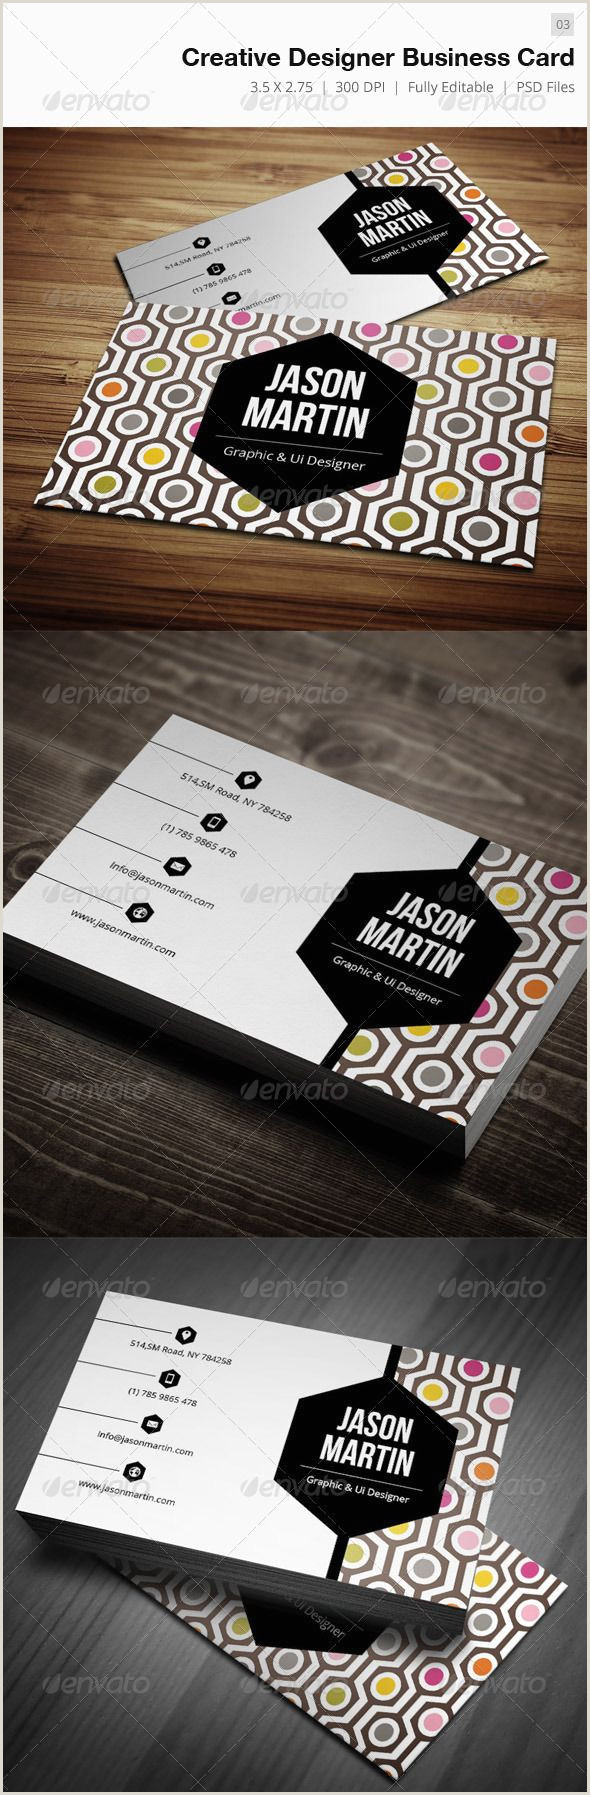 Best Business Cards Color True 100 Best Bold & Colorful Business Cards Images